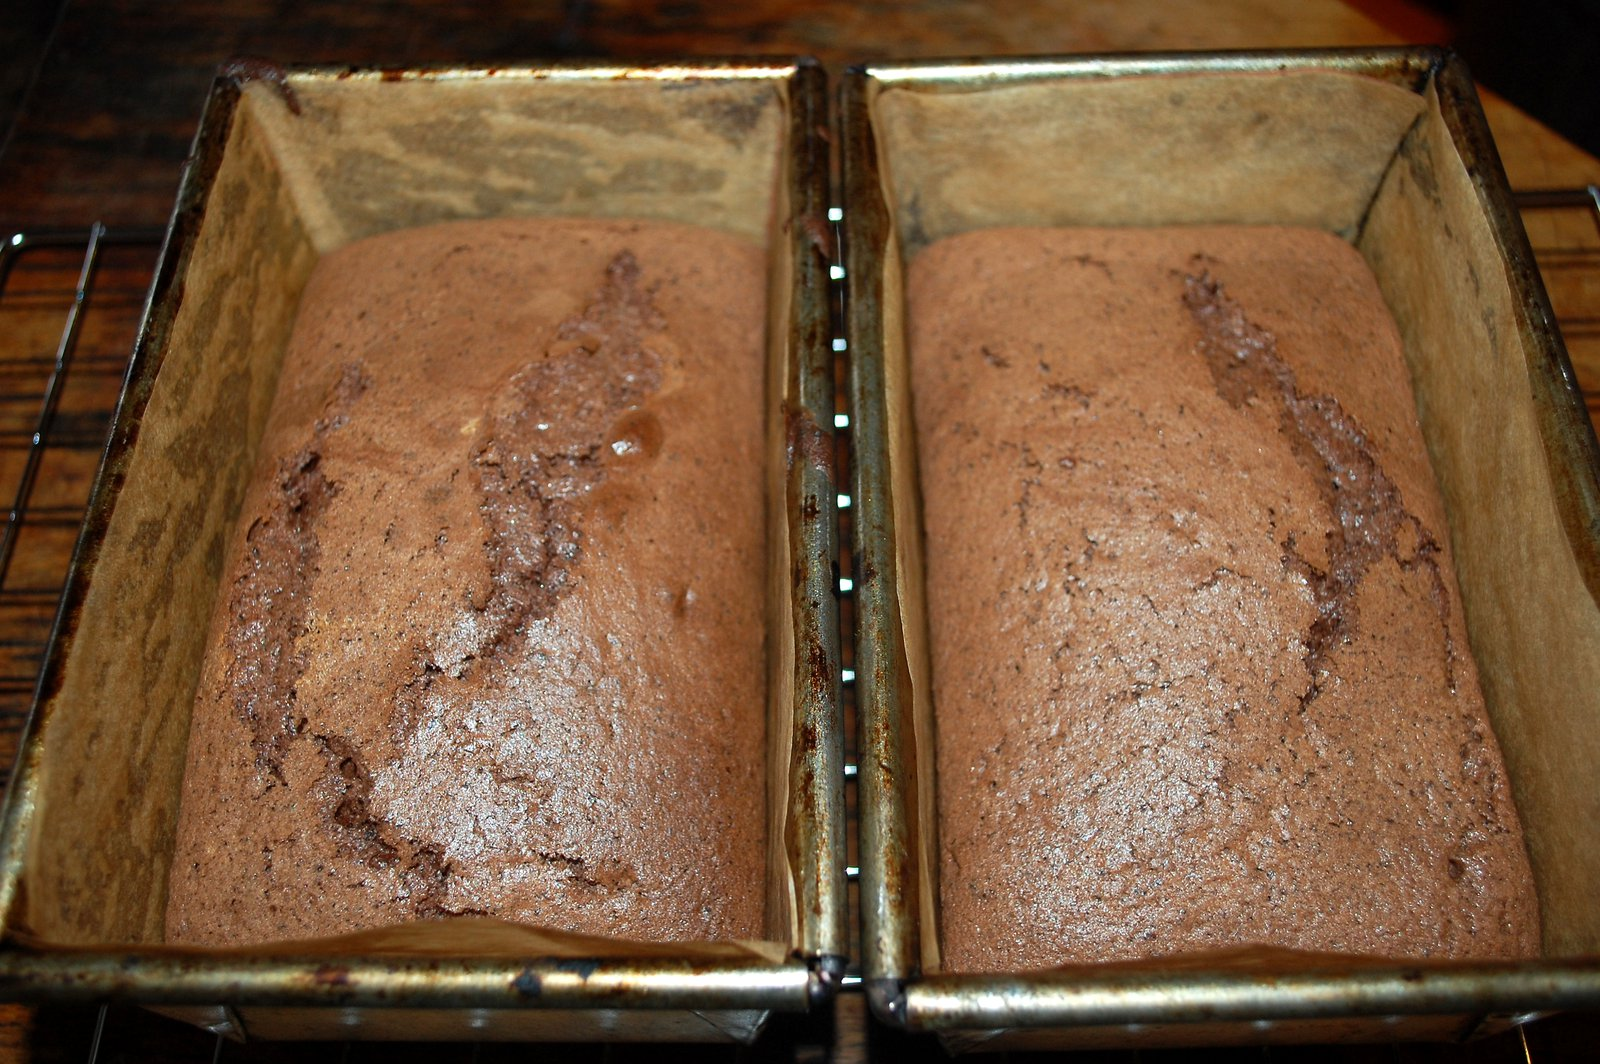 Two Chocolate Cakes